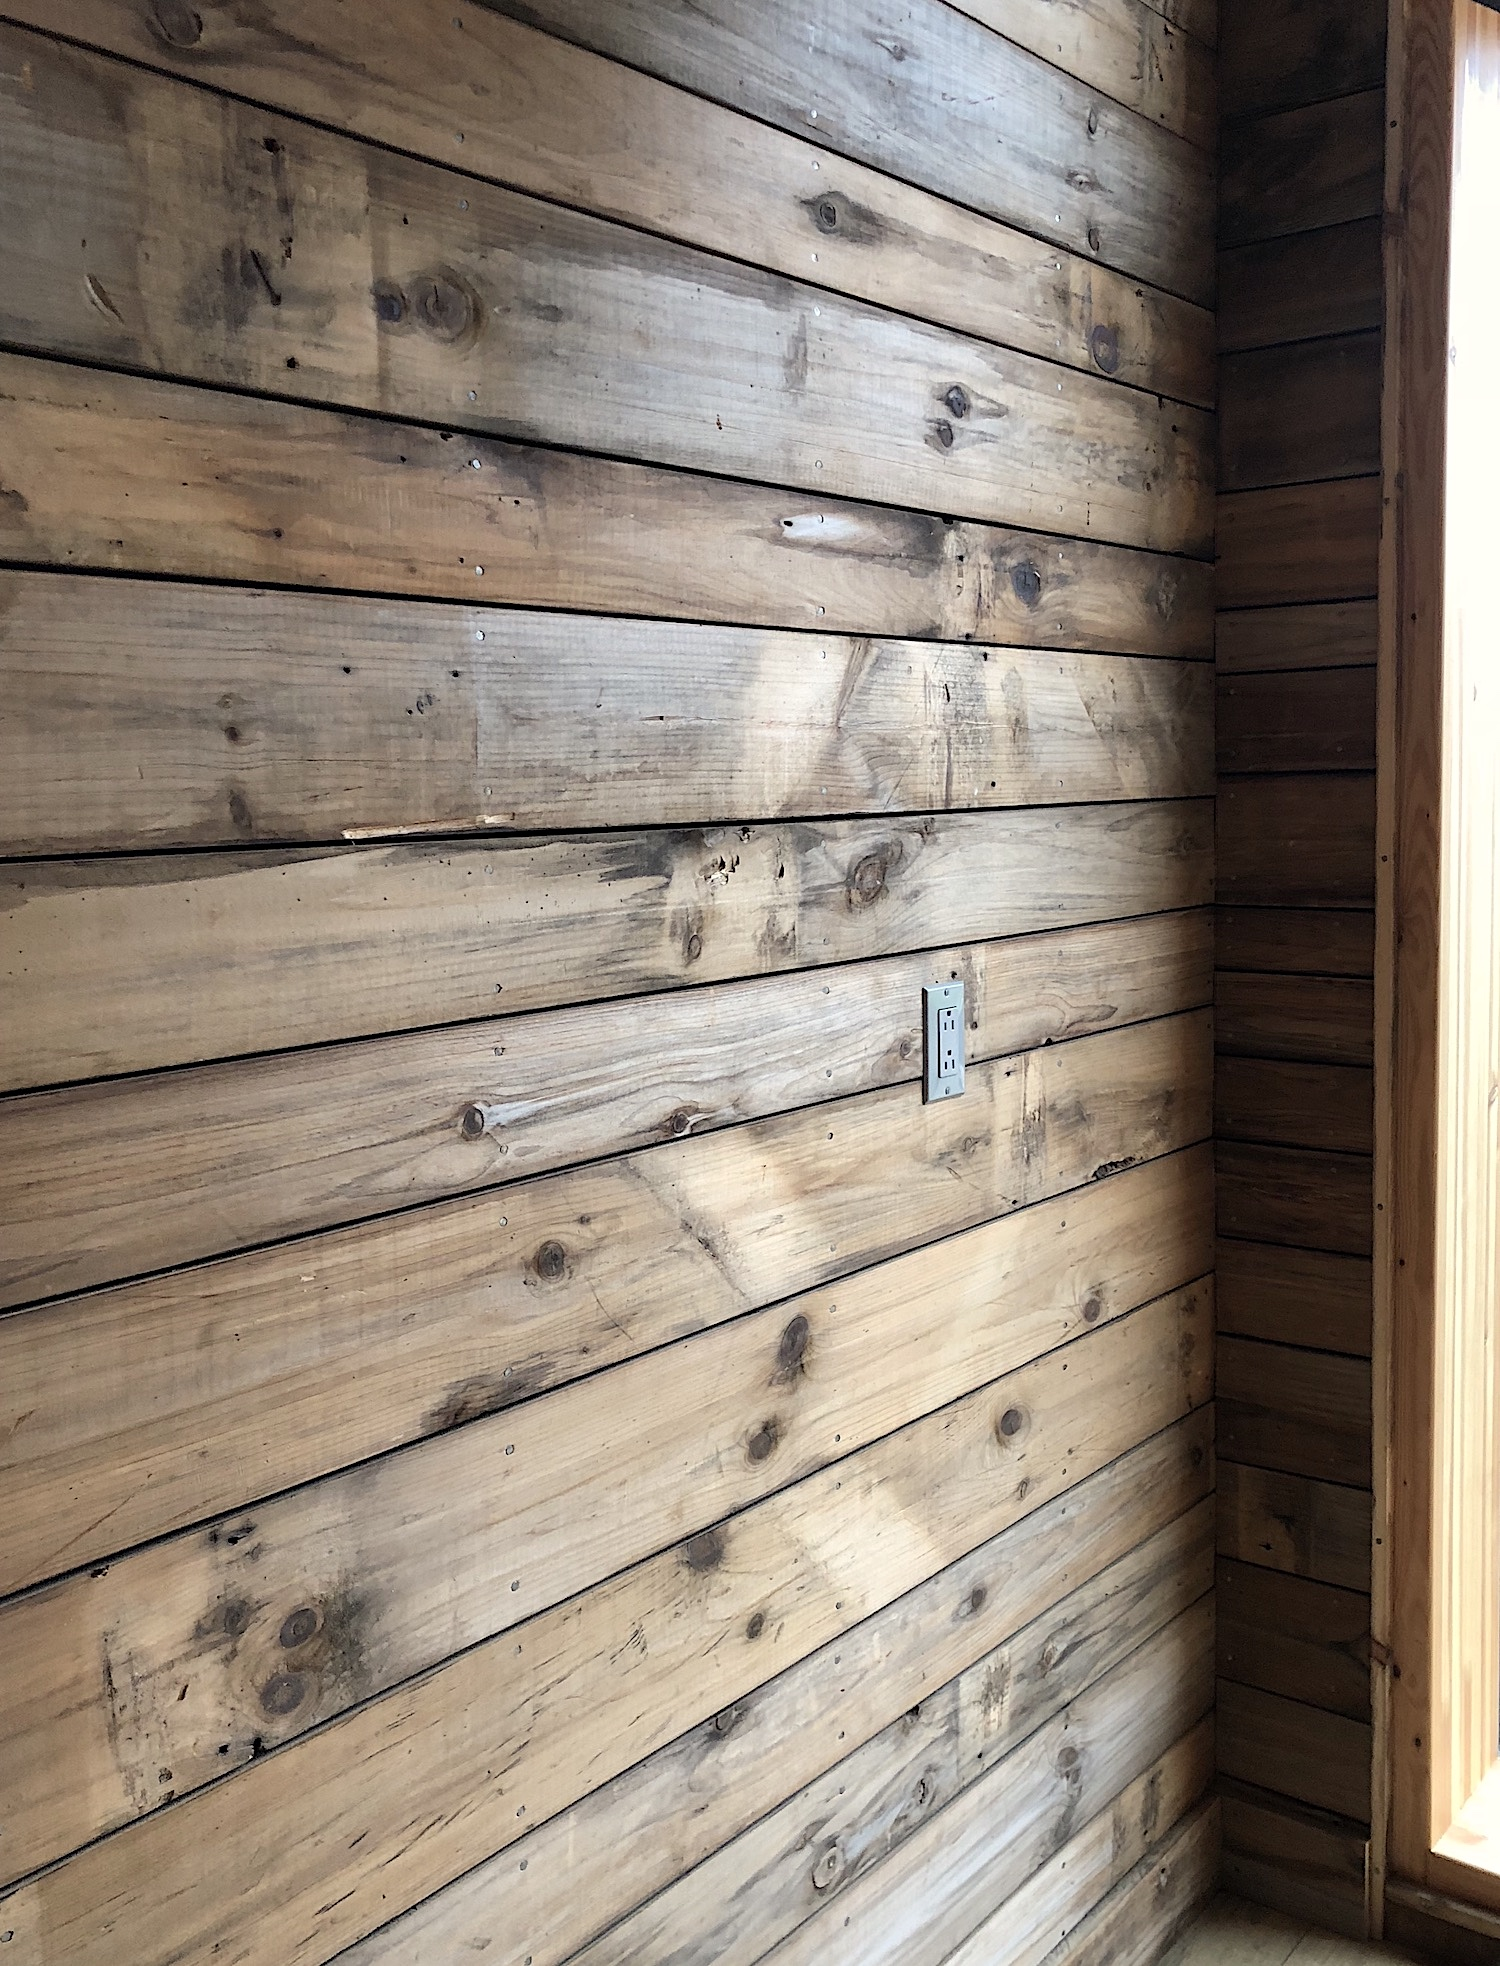 Reclaimed barn board wall in converted barn playhouse in Edgecomb, Maine, sourced by Rousseau Reclaimed Lumber & Flooring